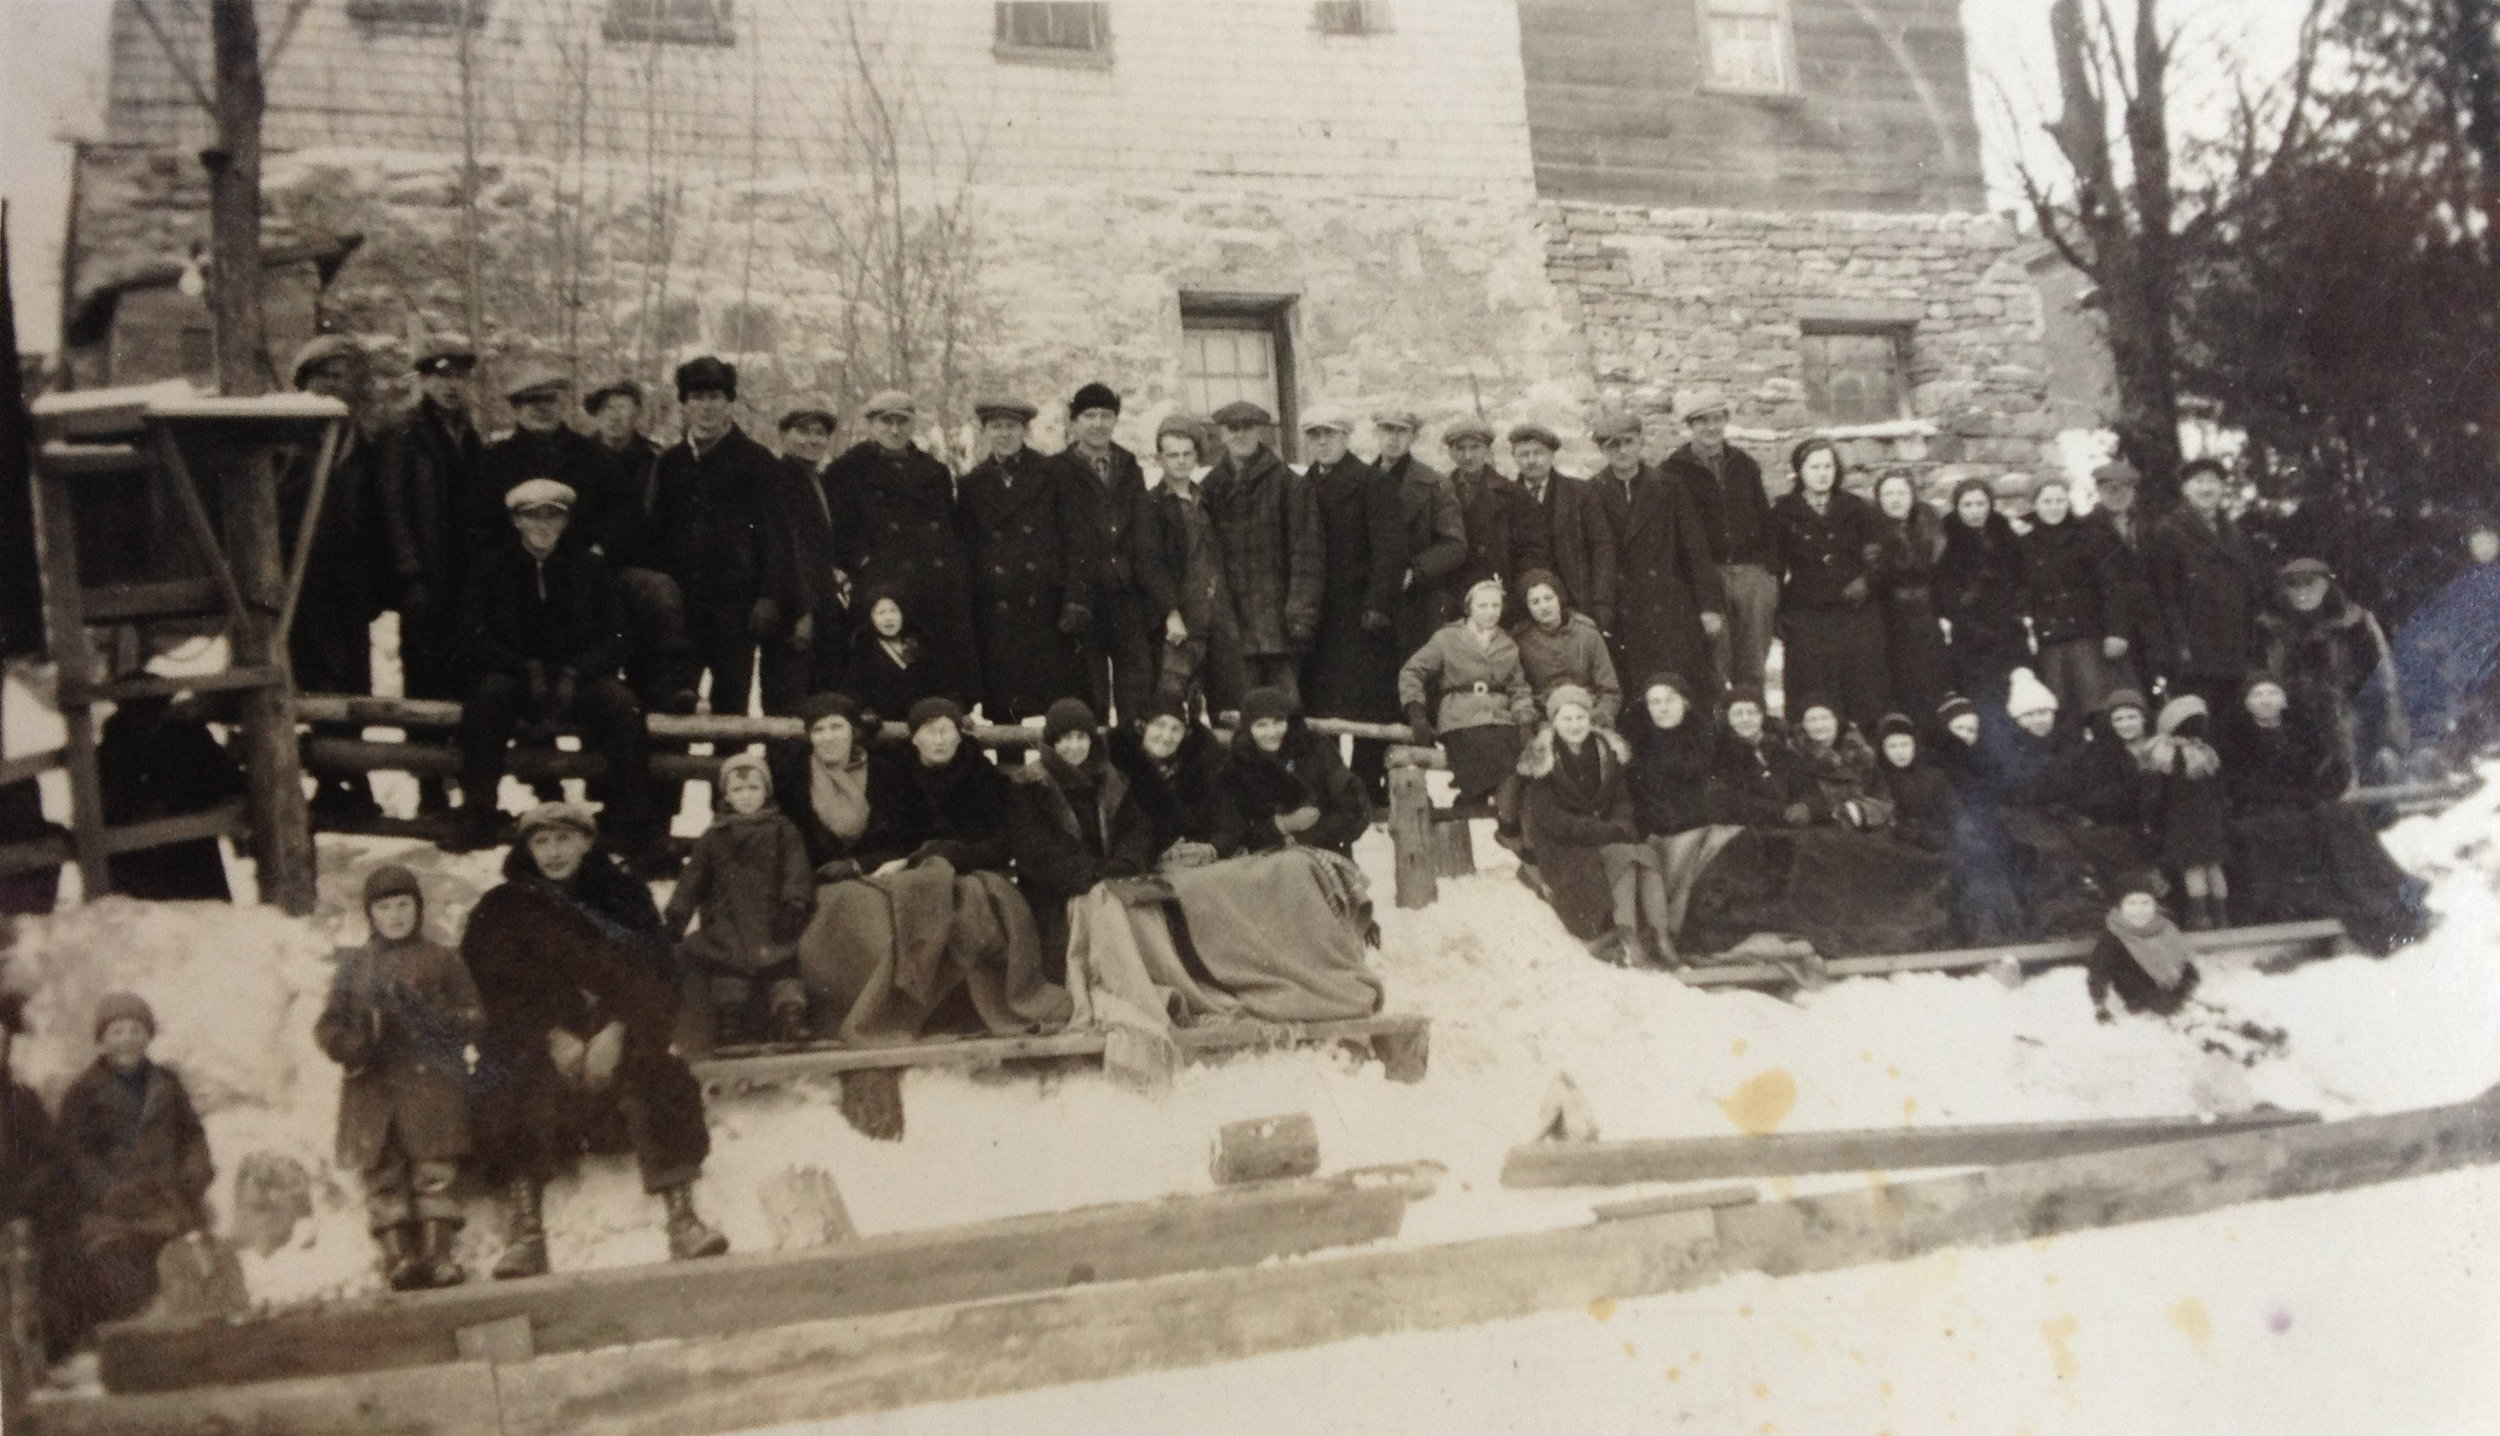 Village residents at a Horning's Mills hockey game on Marshall's Pond in the 1930s, in front of what is now the Wild Mill Studios